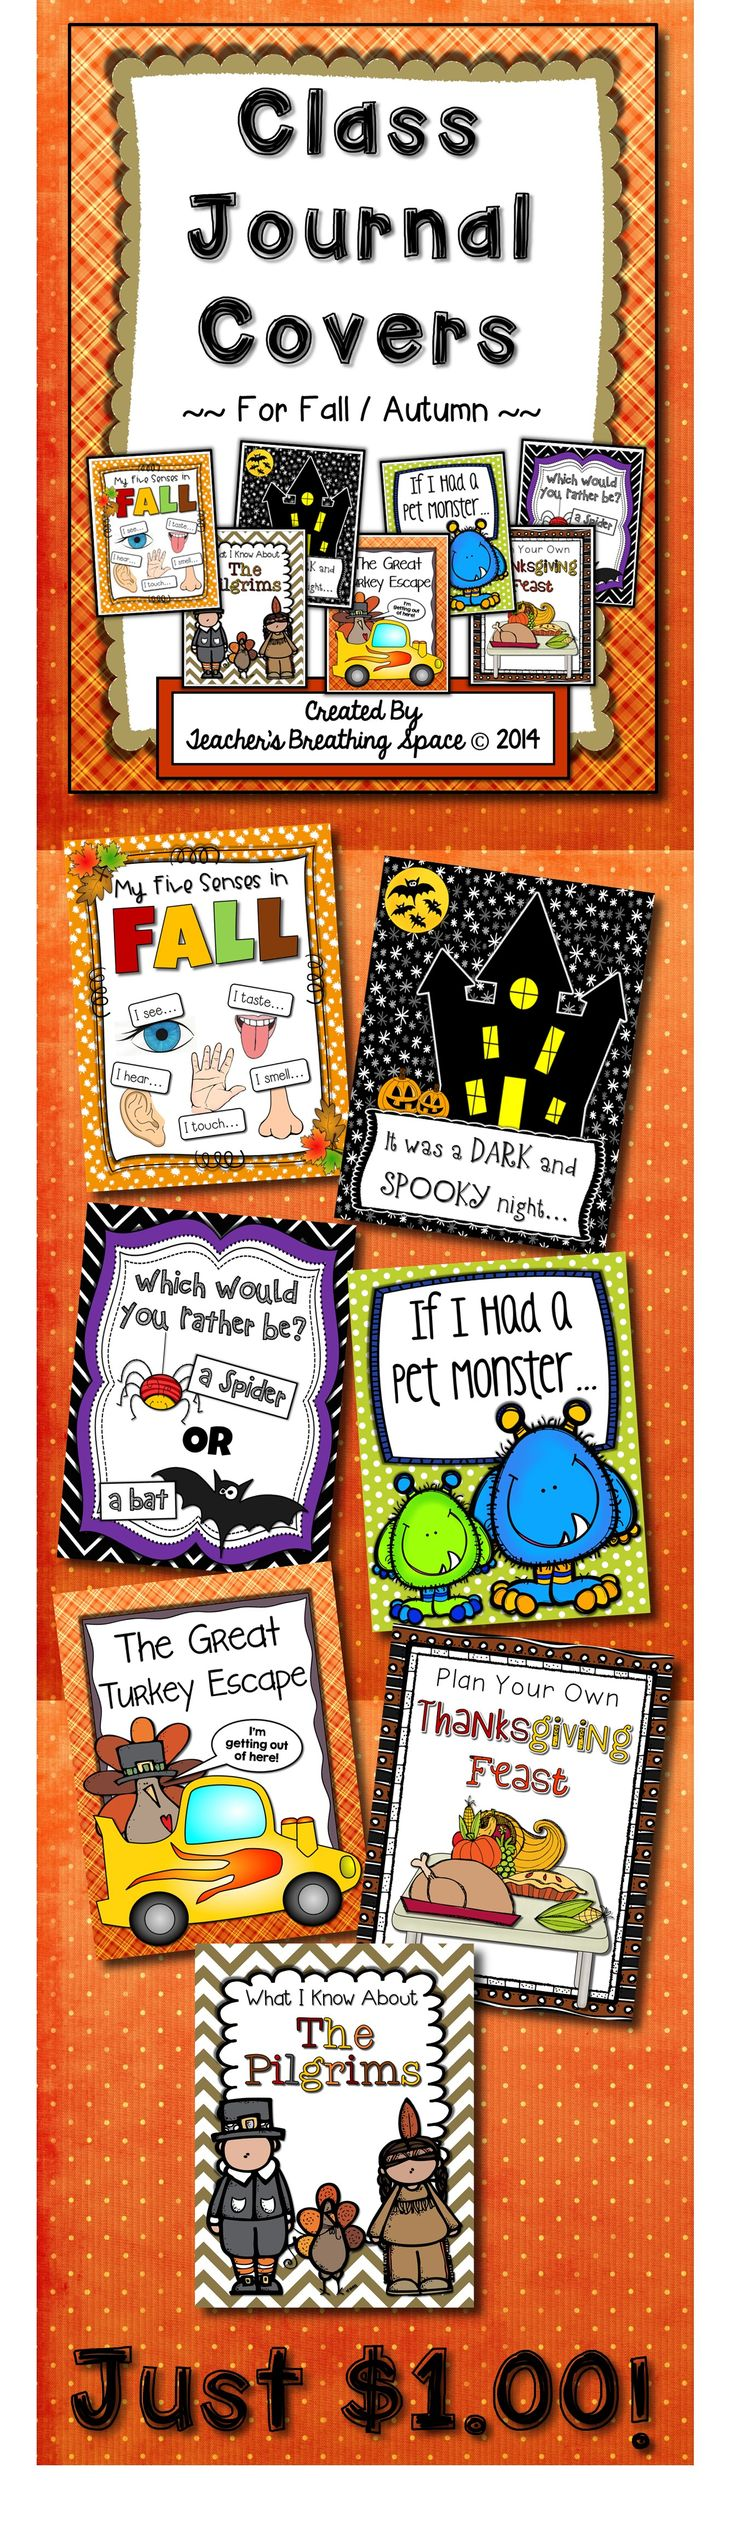 Whole Class Journal Covers for Fall / Autumn --- Writing Topics for October and November --- Just $1.00!